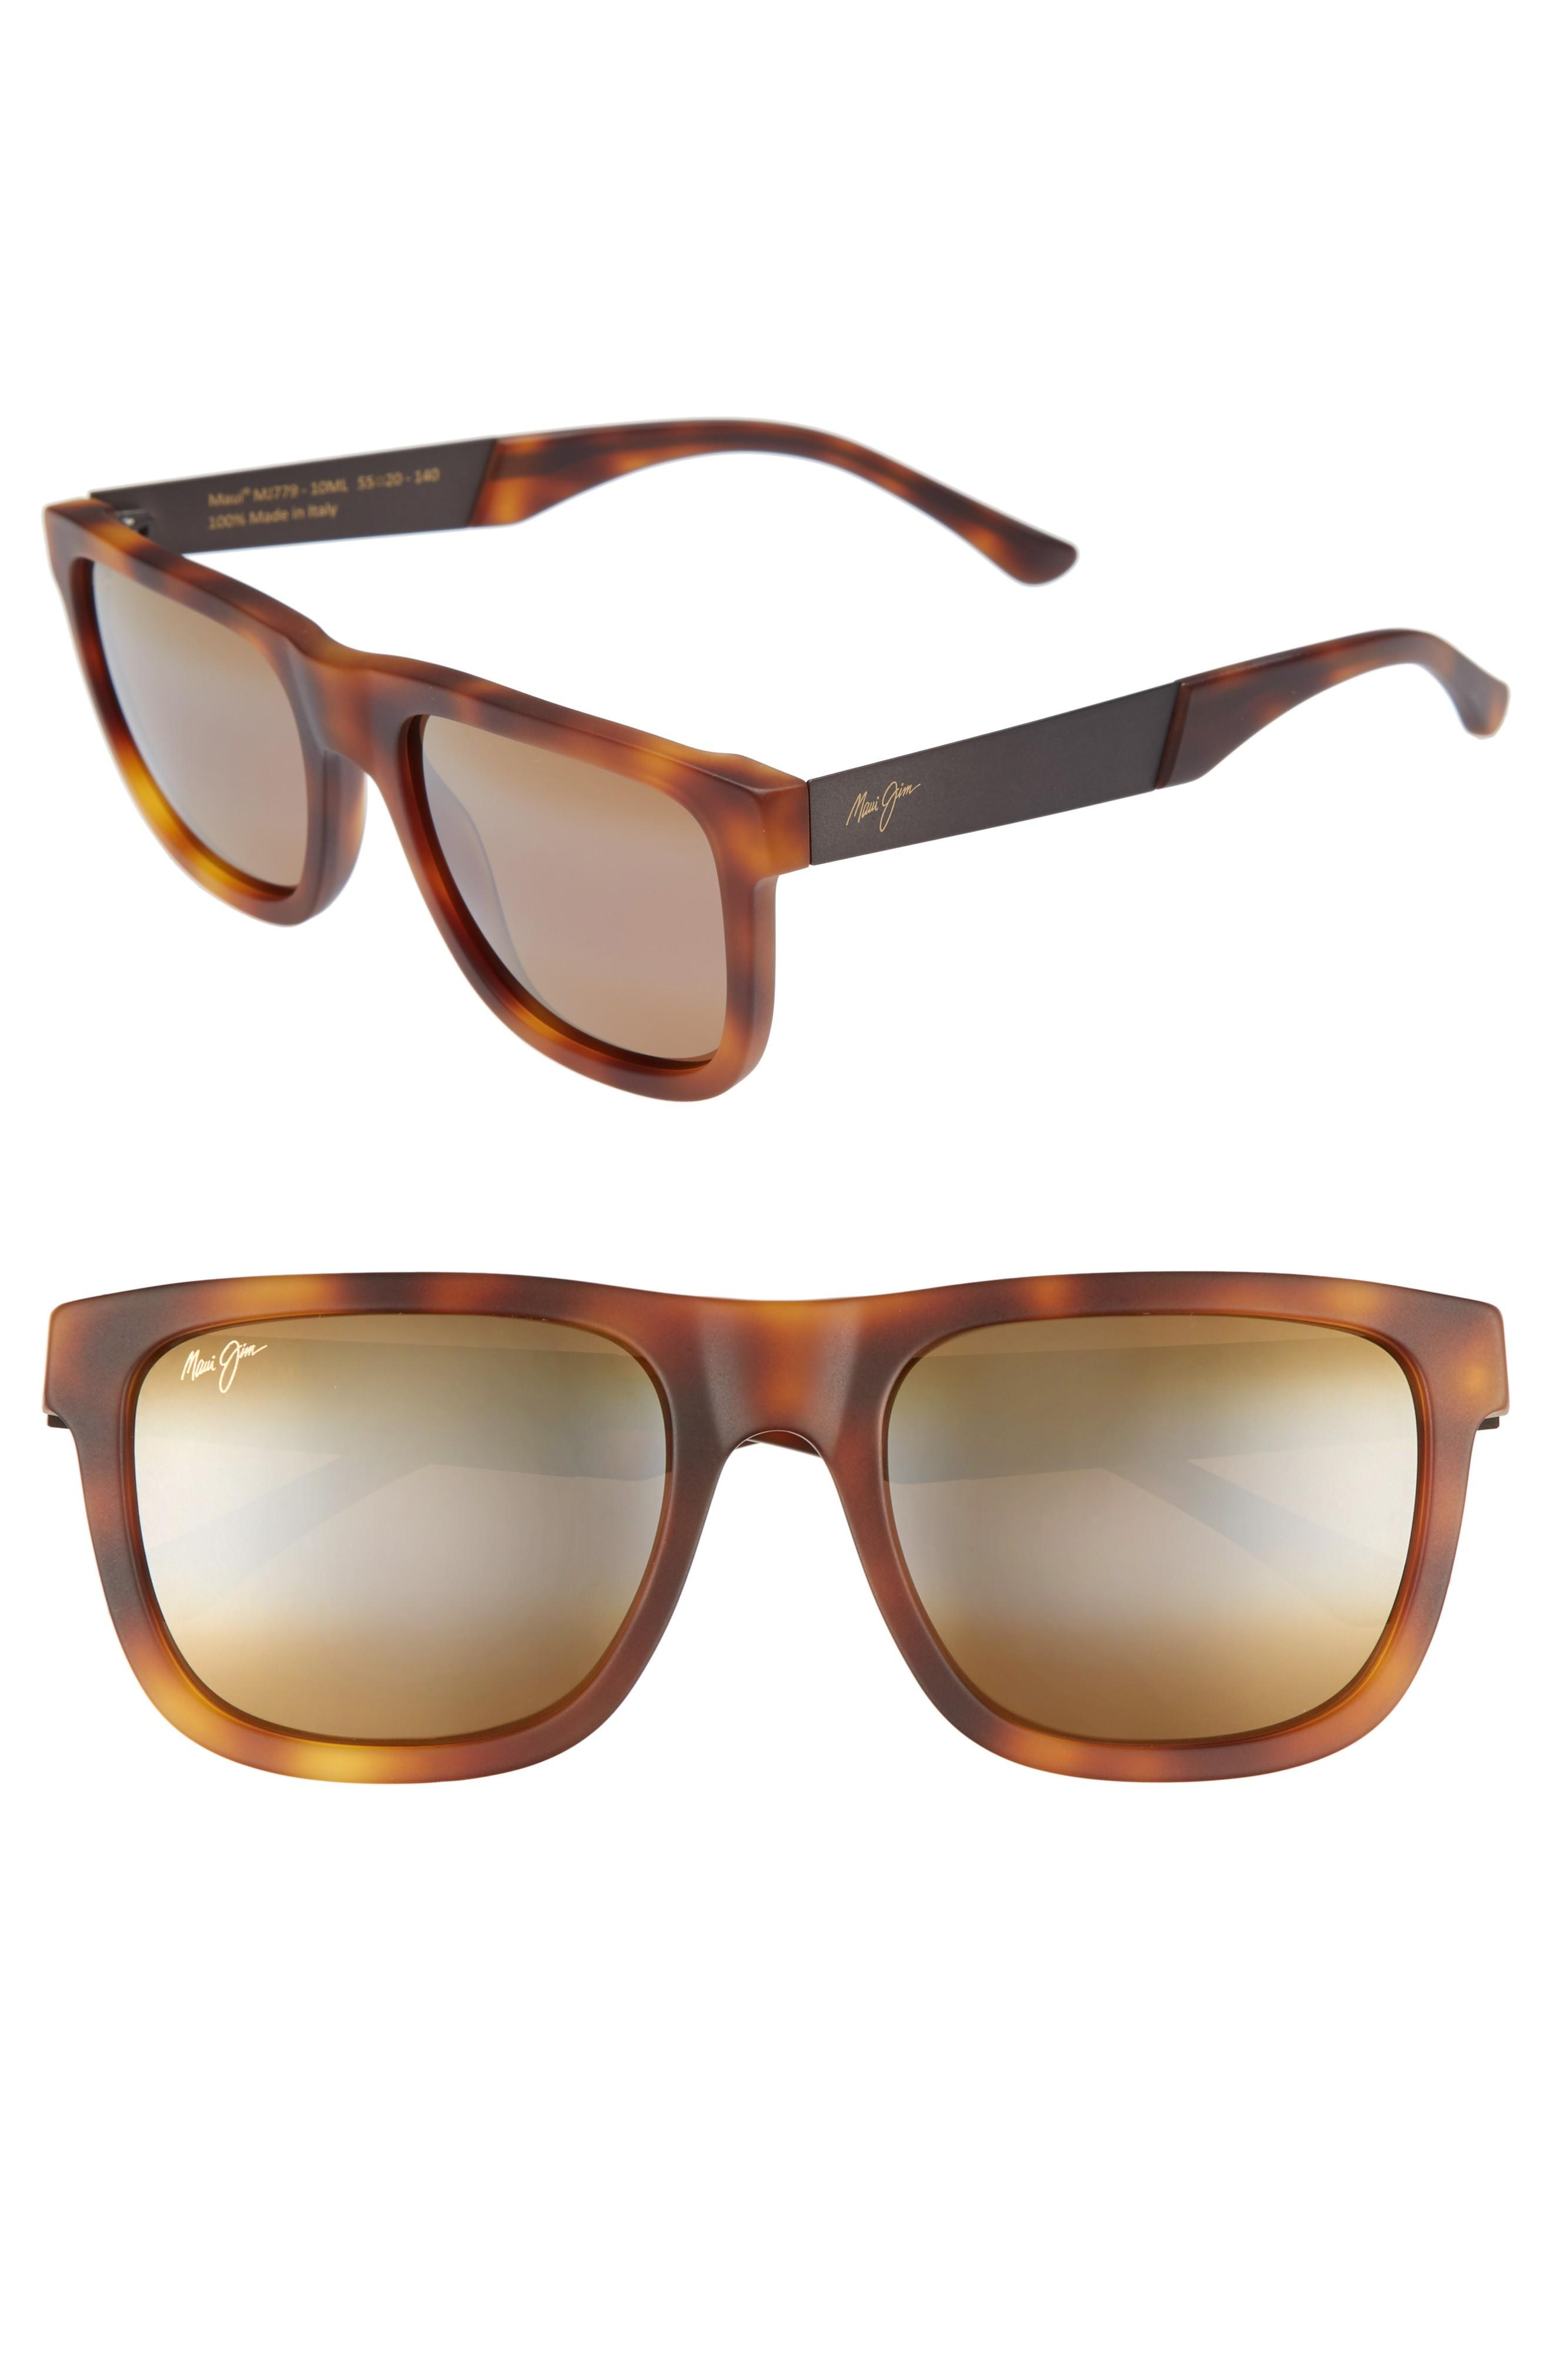 35454e5bec Maui Jim Talk Story 55Mm Polarized Sunglasses - Matte Tokyo Tortoise  Bronze